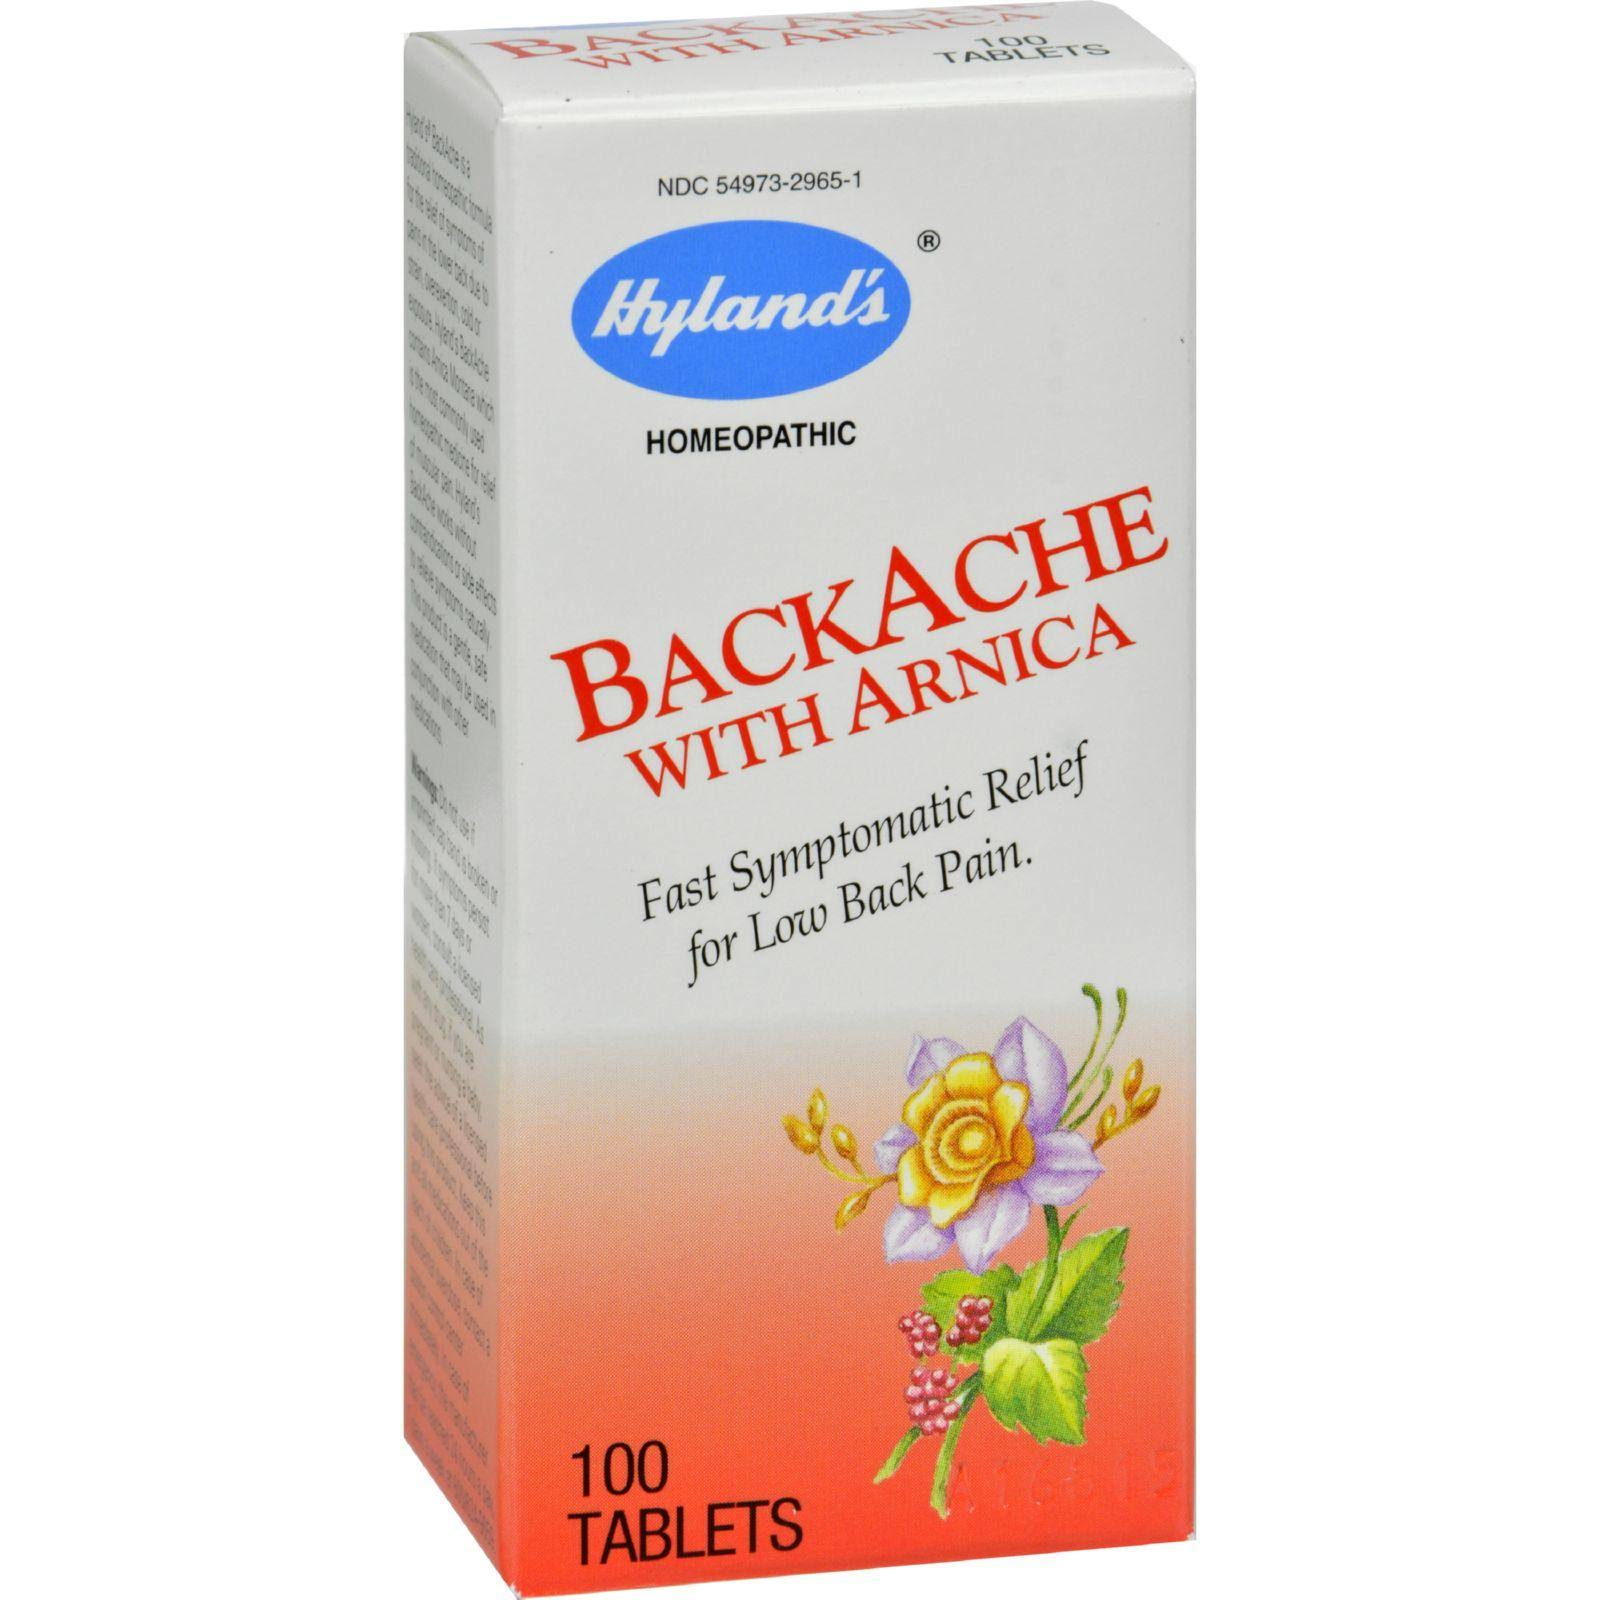 Hylands Homeopathic Backache With Arnica - 100 Tablets